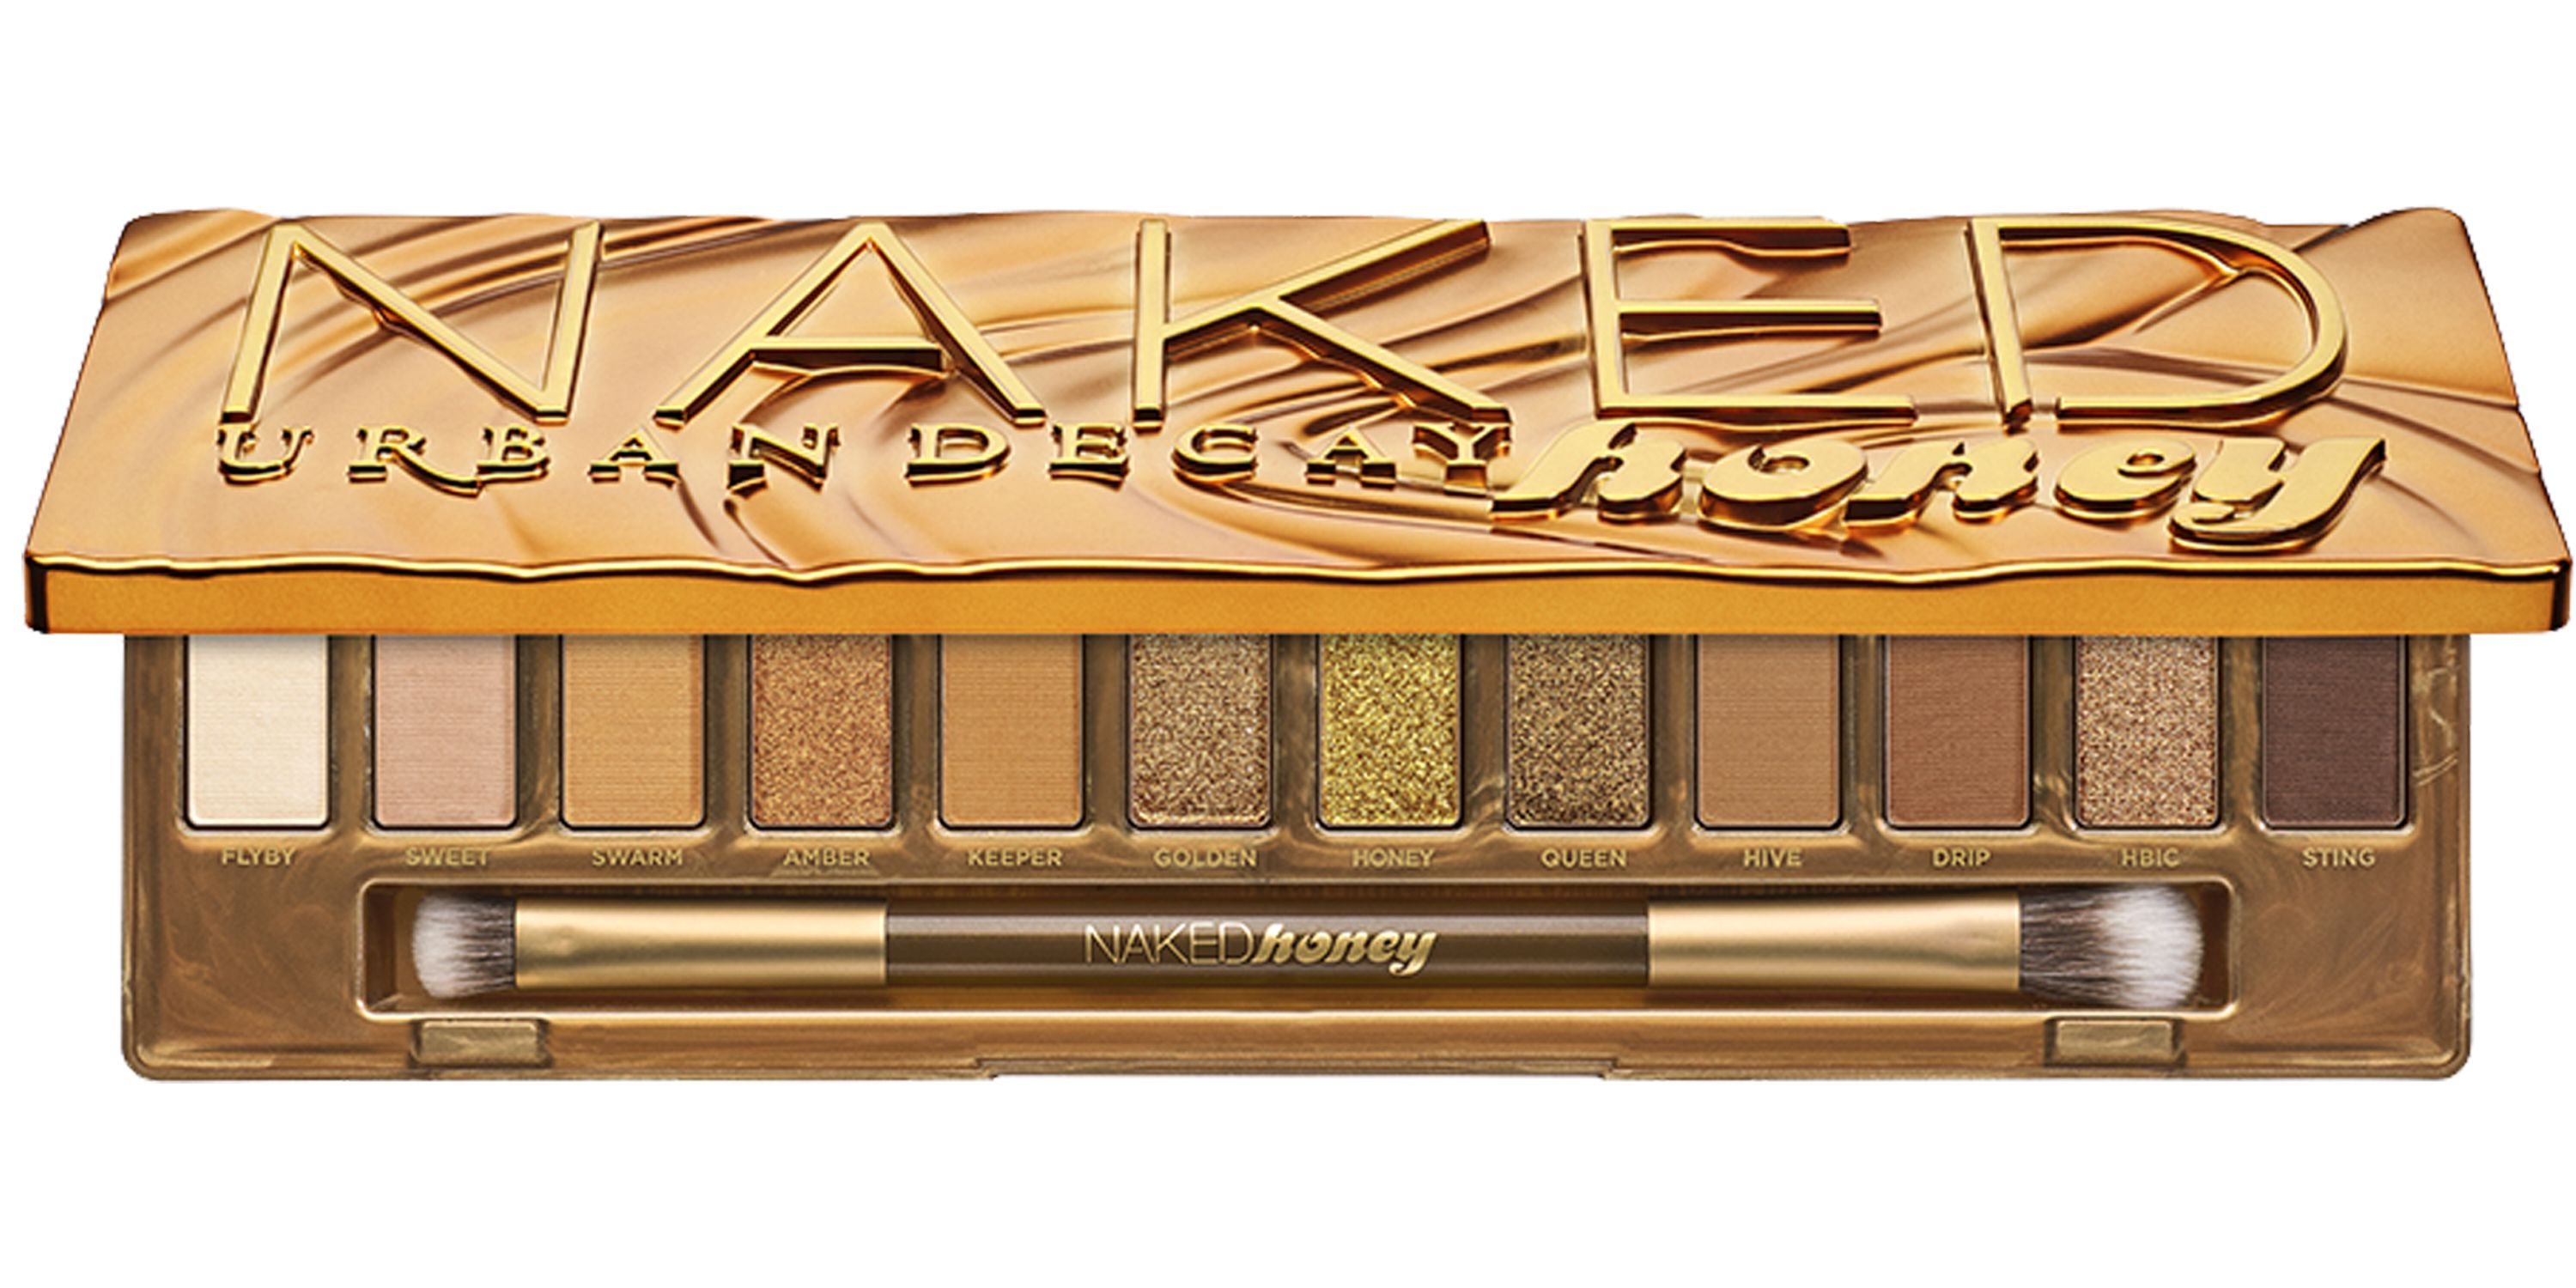 Urban Decay are launching a NAKED *Honey* palette and OMG